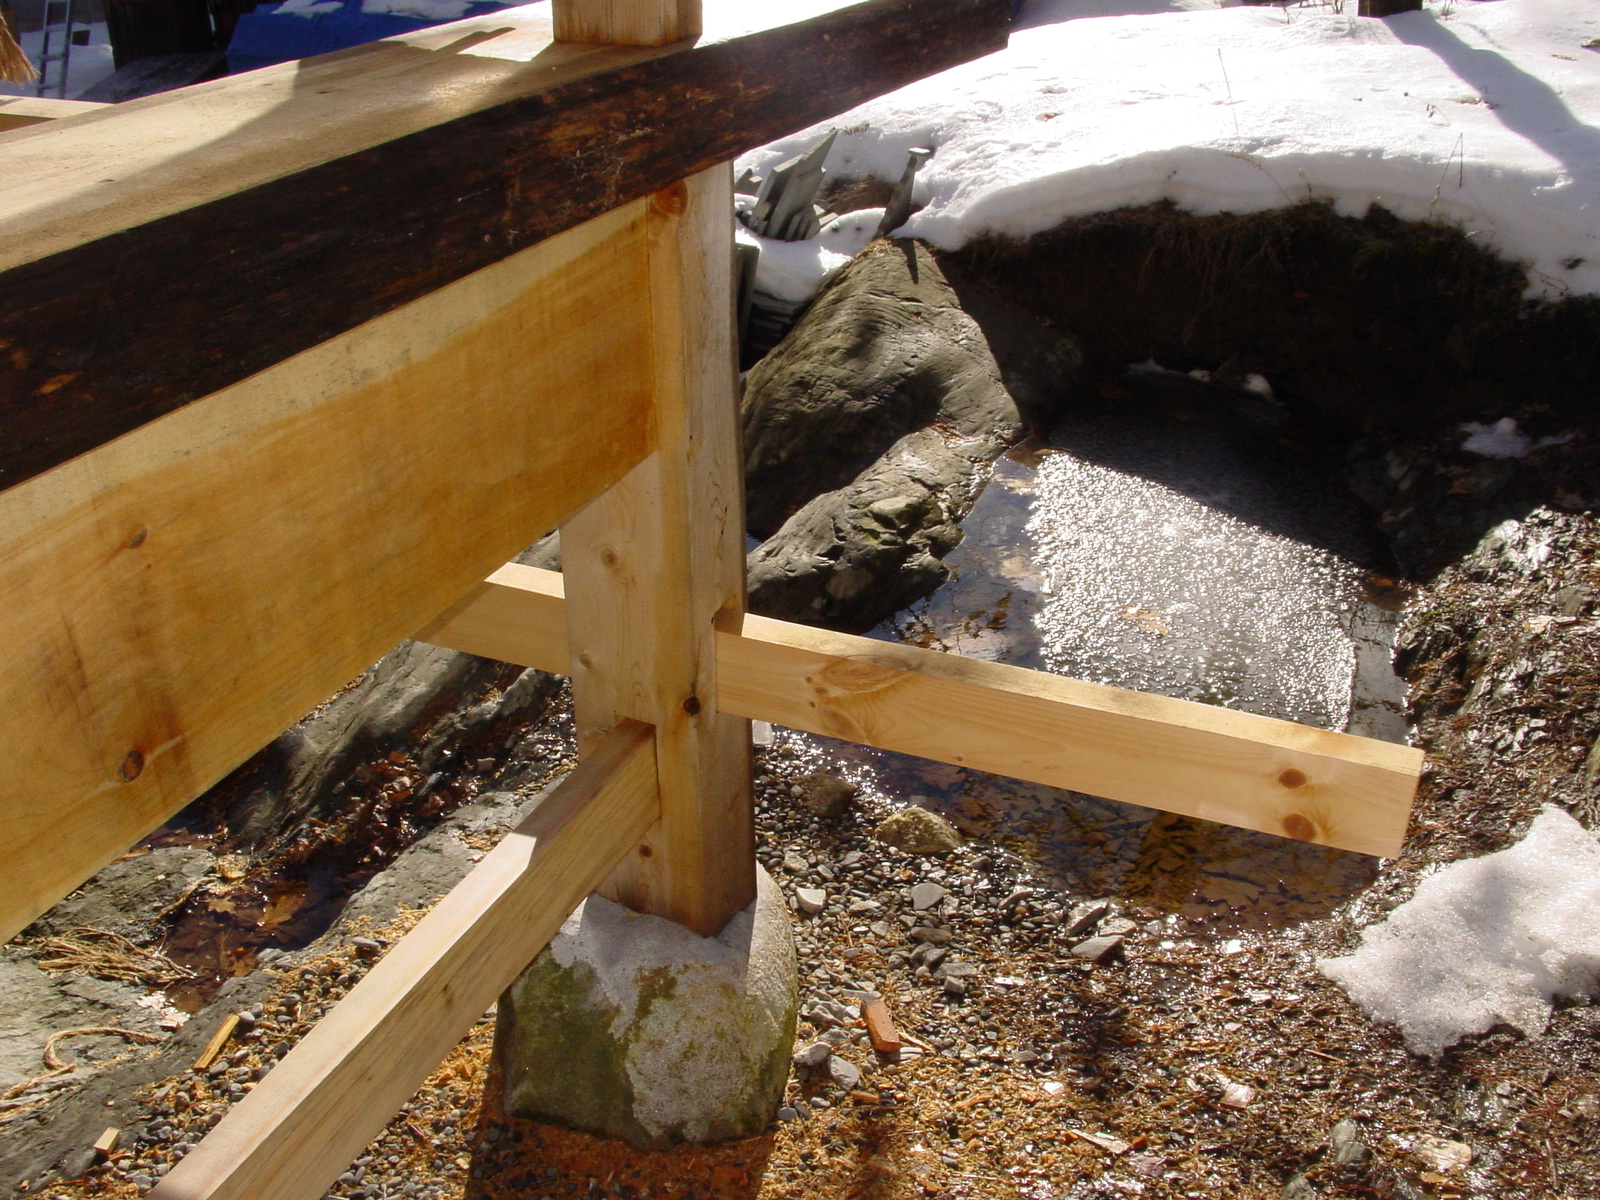 about post and beams and stone foundations -preventing rot ... on construction house designs, timber frame cottage, timber frame home, timber frame kitchen, timber frame ideas, timber frame landscaping, timber frame additions, timber frame interior design, timber frame lighting, timber frame ceiling, roof house designs, timber frame books, timber frame bathroom, landscaping house designs, timber frame construction, timber home designs, timber frame bedroom, post frame house designs, timber frame furniture, timber frame living room,